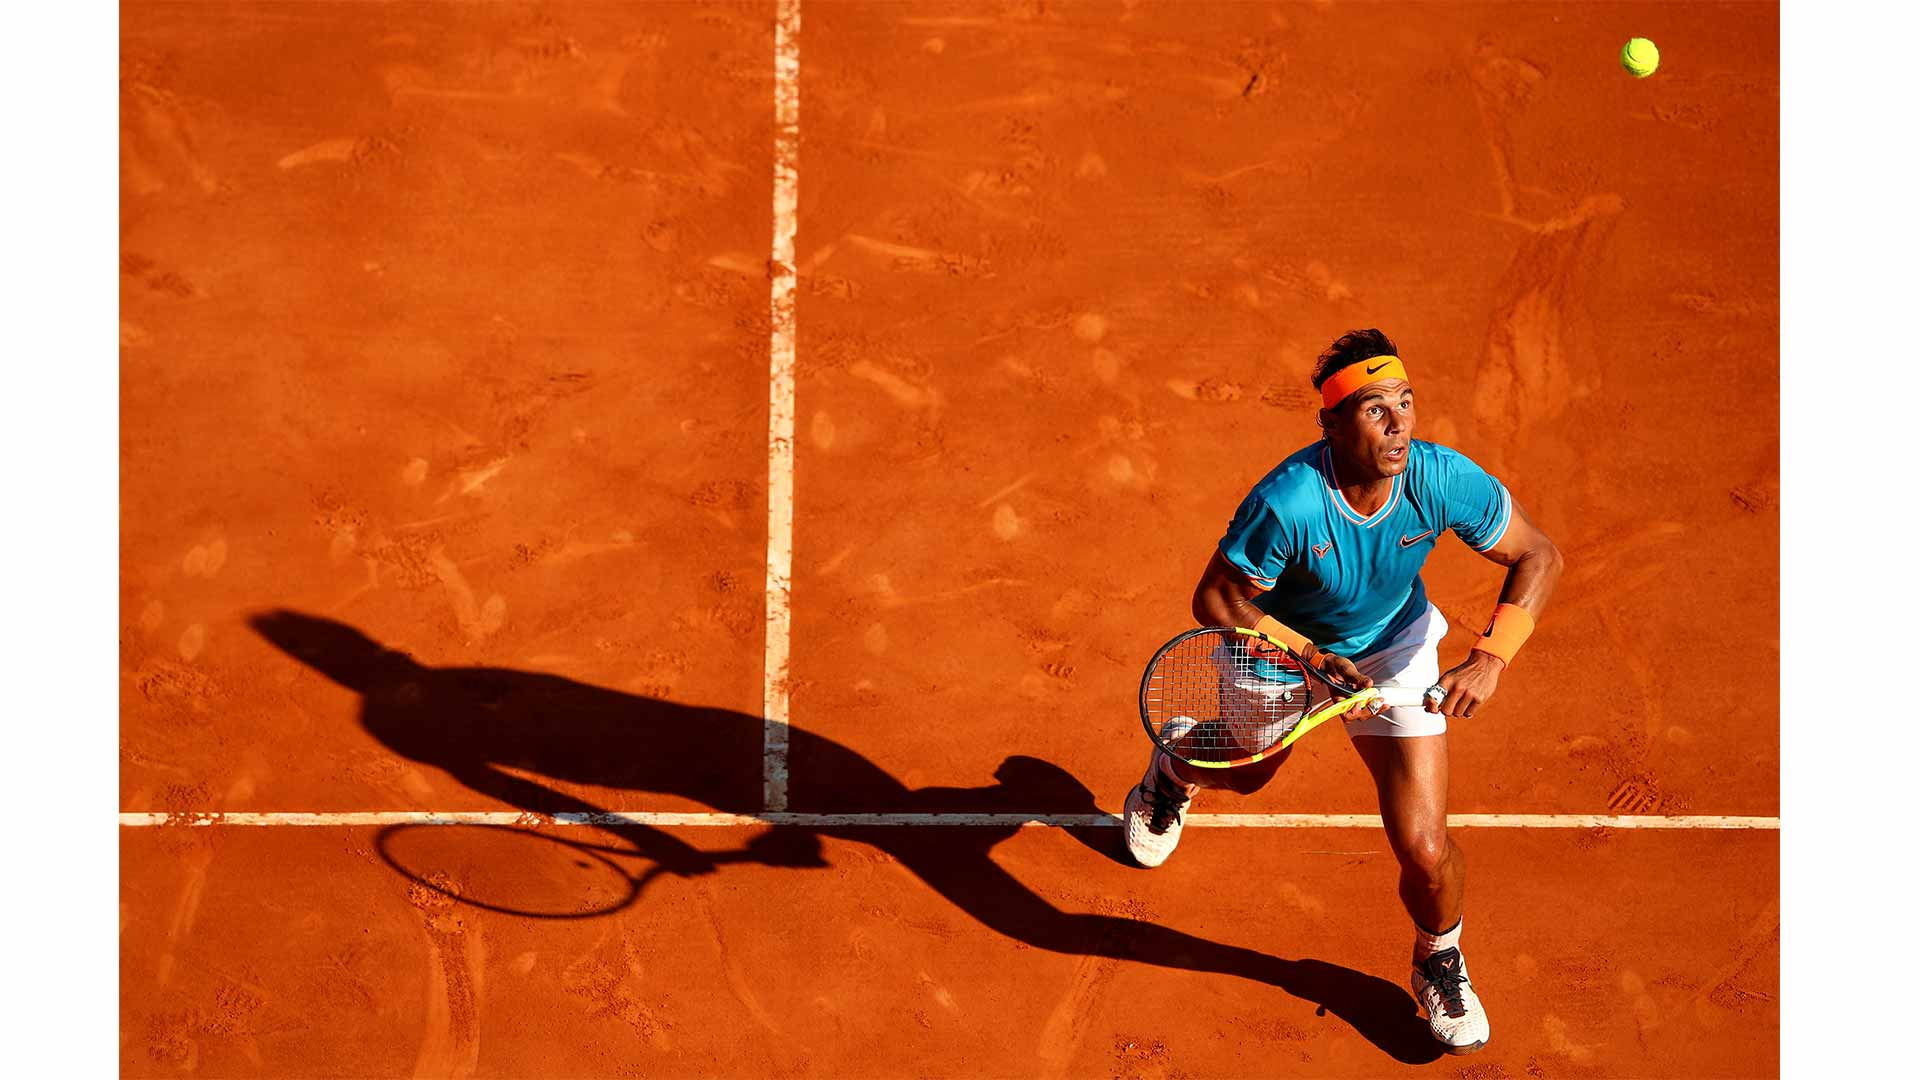 Photographer Clive Brunkill's Best of 2019 pick: <a href='https://www.atptour.com/en/players/rafael-nadal/n409/overview'>Rafael Nadal</a> in action at the 2019 <a href='https://www.atptour.com/en/tournaments/atp-masters-1000-monte-carlo/410/overview'>Rolex Monte-Carlo Masters</a>.